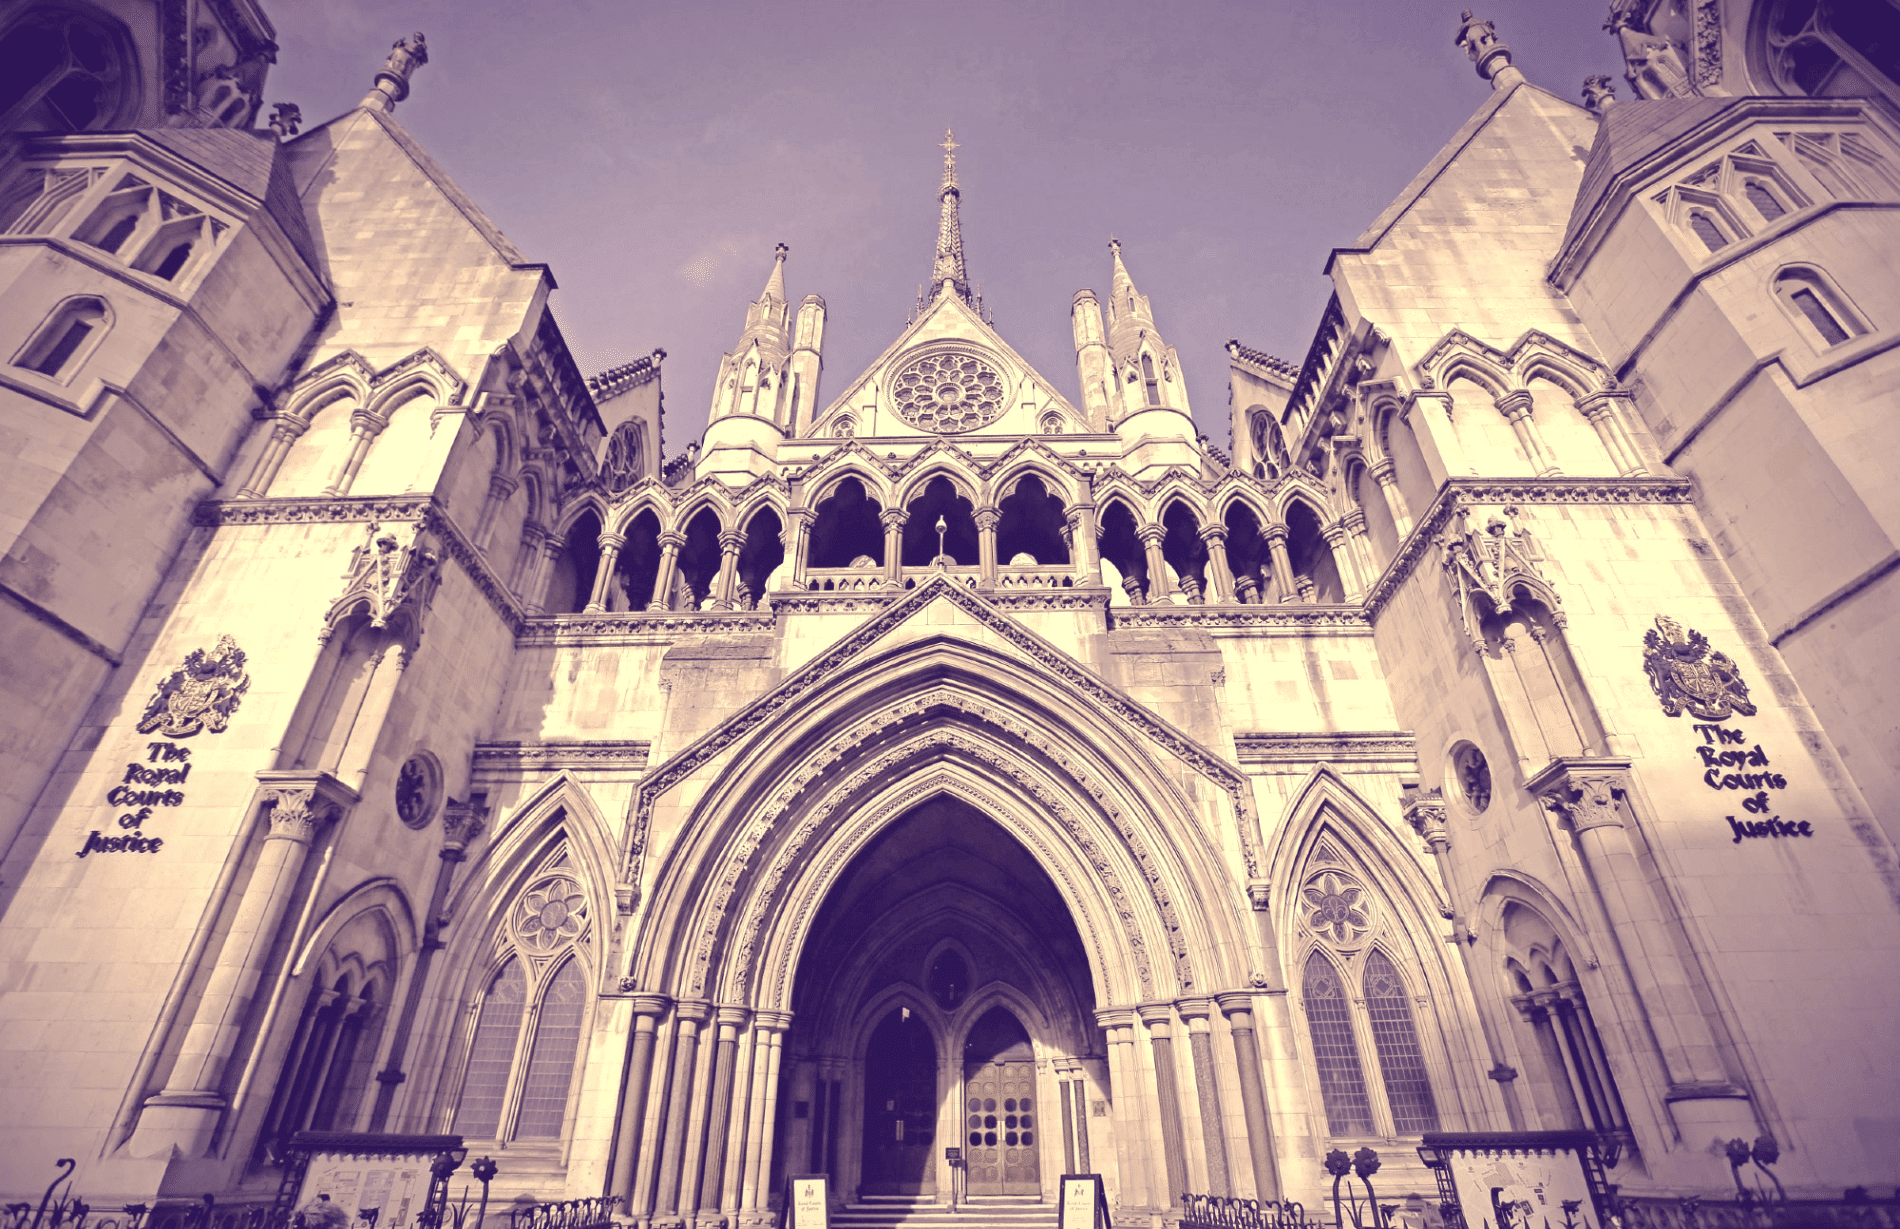 lexlaw litigation solicitors barristers in london limitation